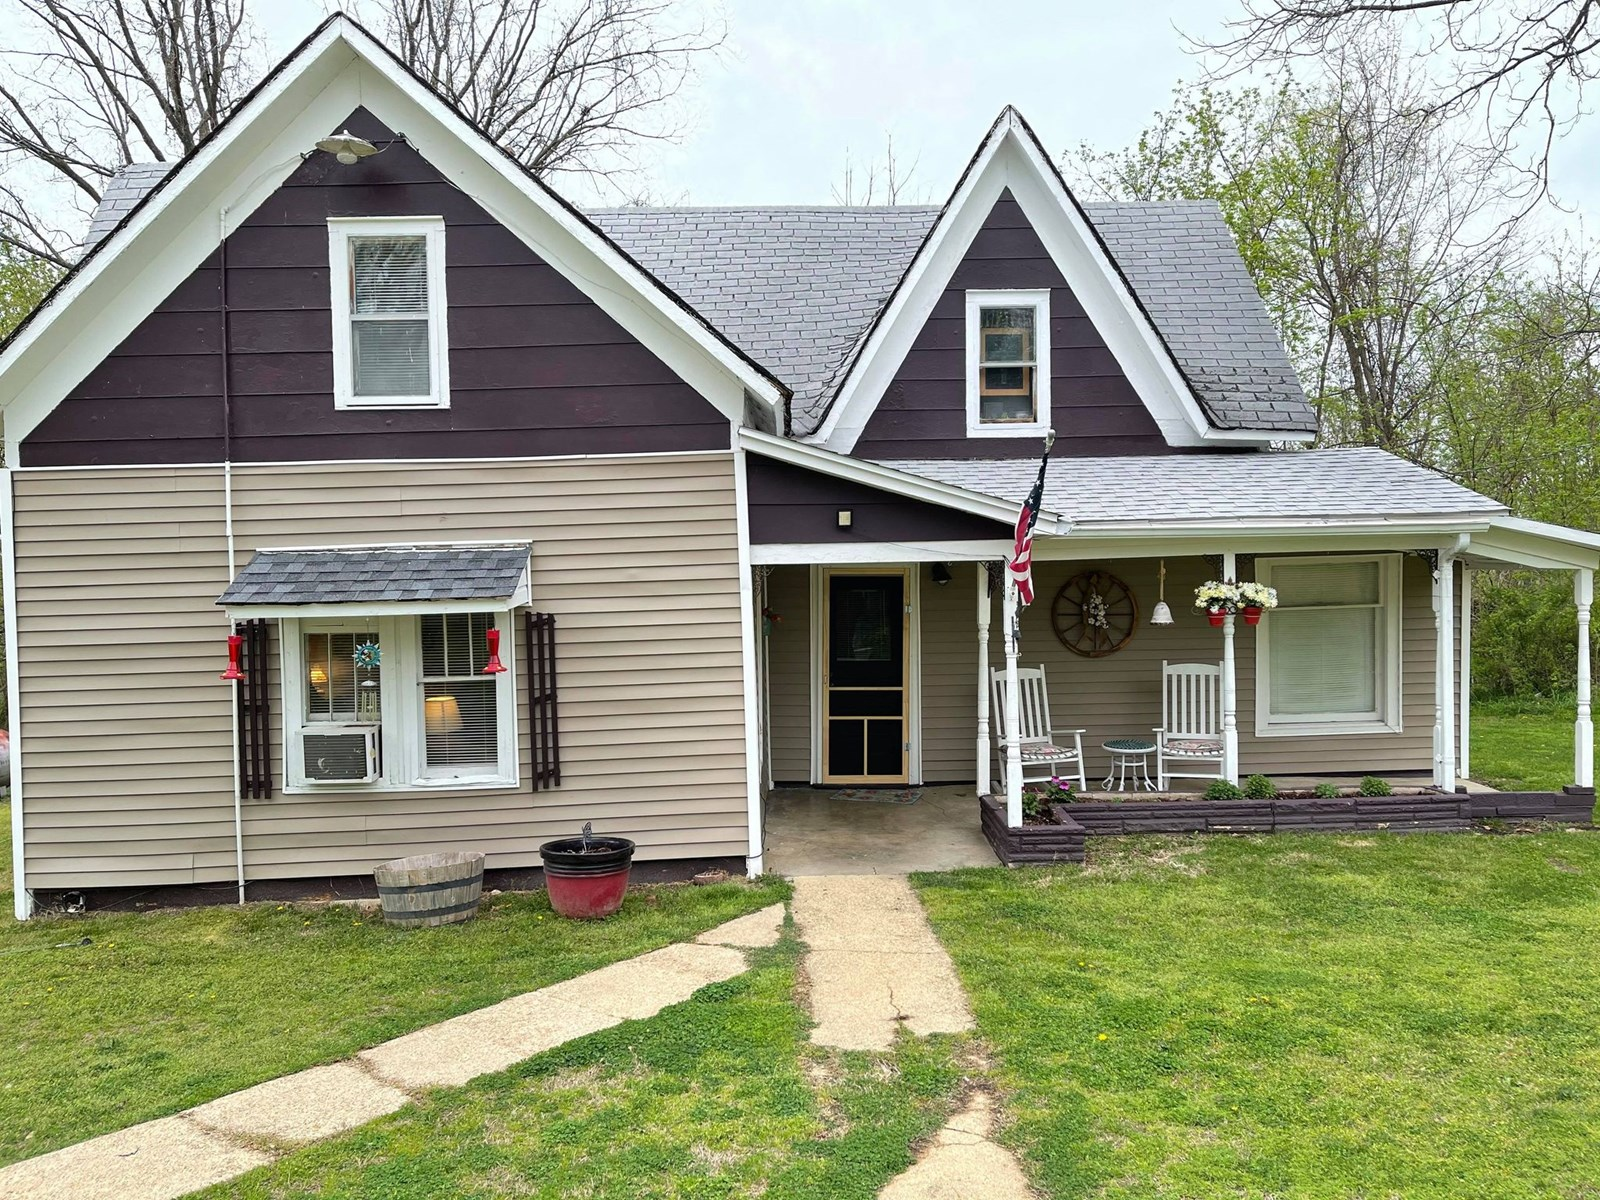 Updated home for sale in Ava Mo.